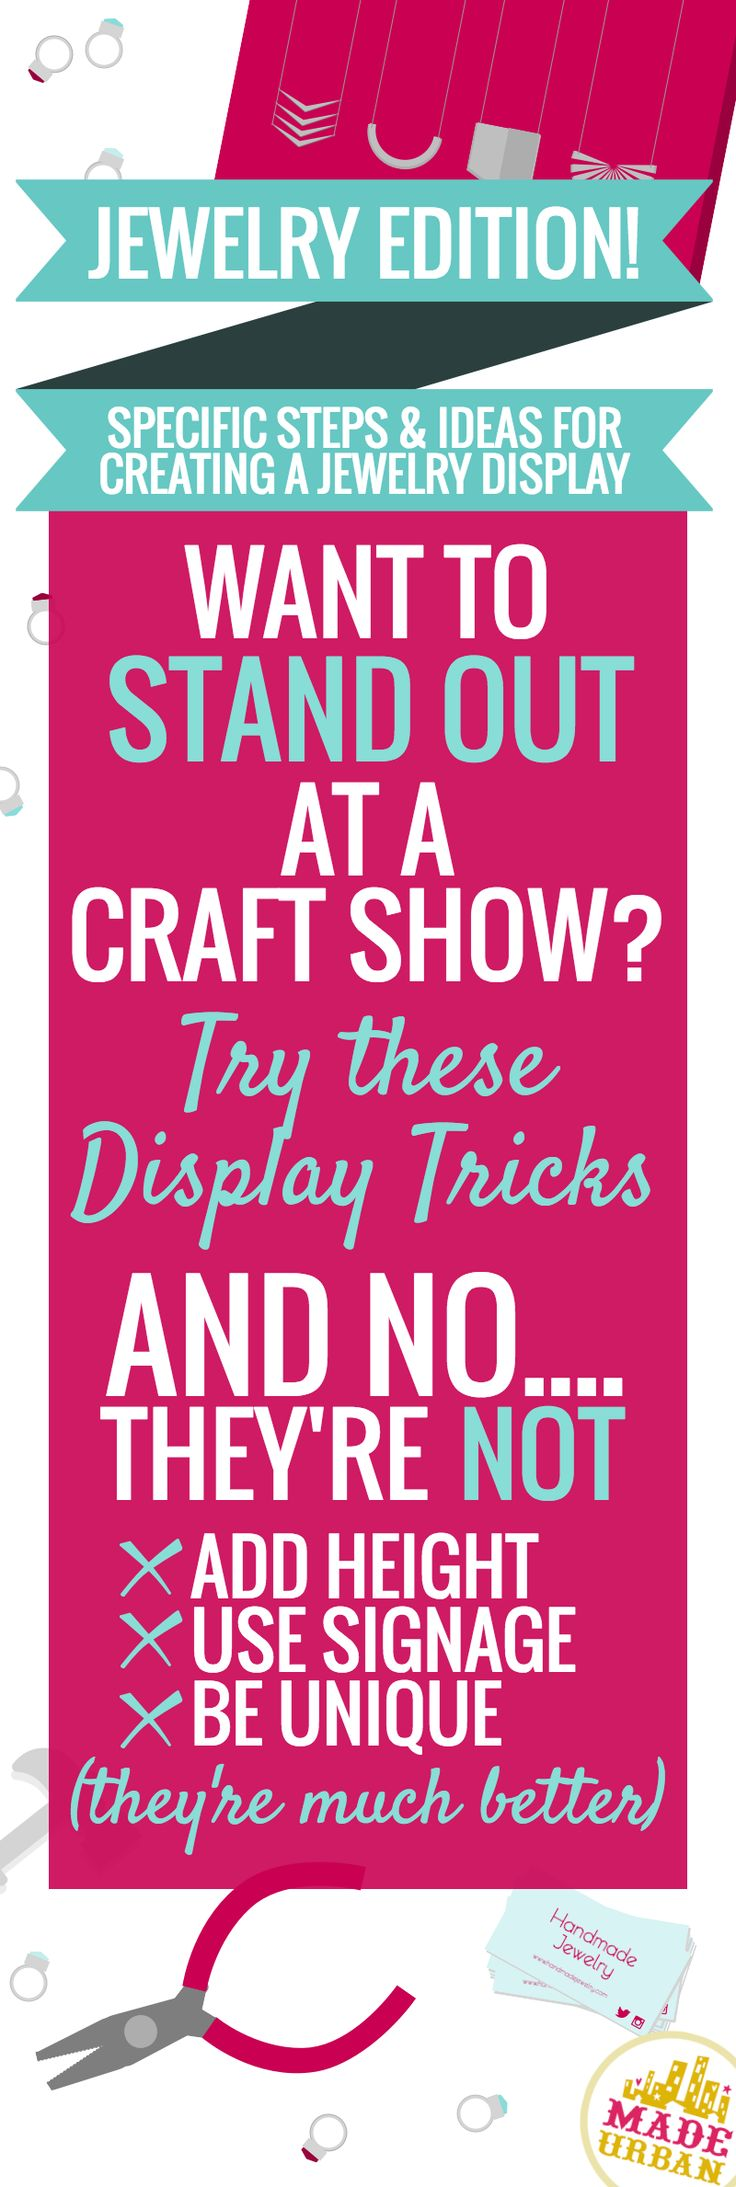 HOW TO DISPLAY JEWELRY AT A CRAFT FAIR - steps, ideas and examples on how to create an effective display for your handmade jewelry at a craft show | Made Urban